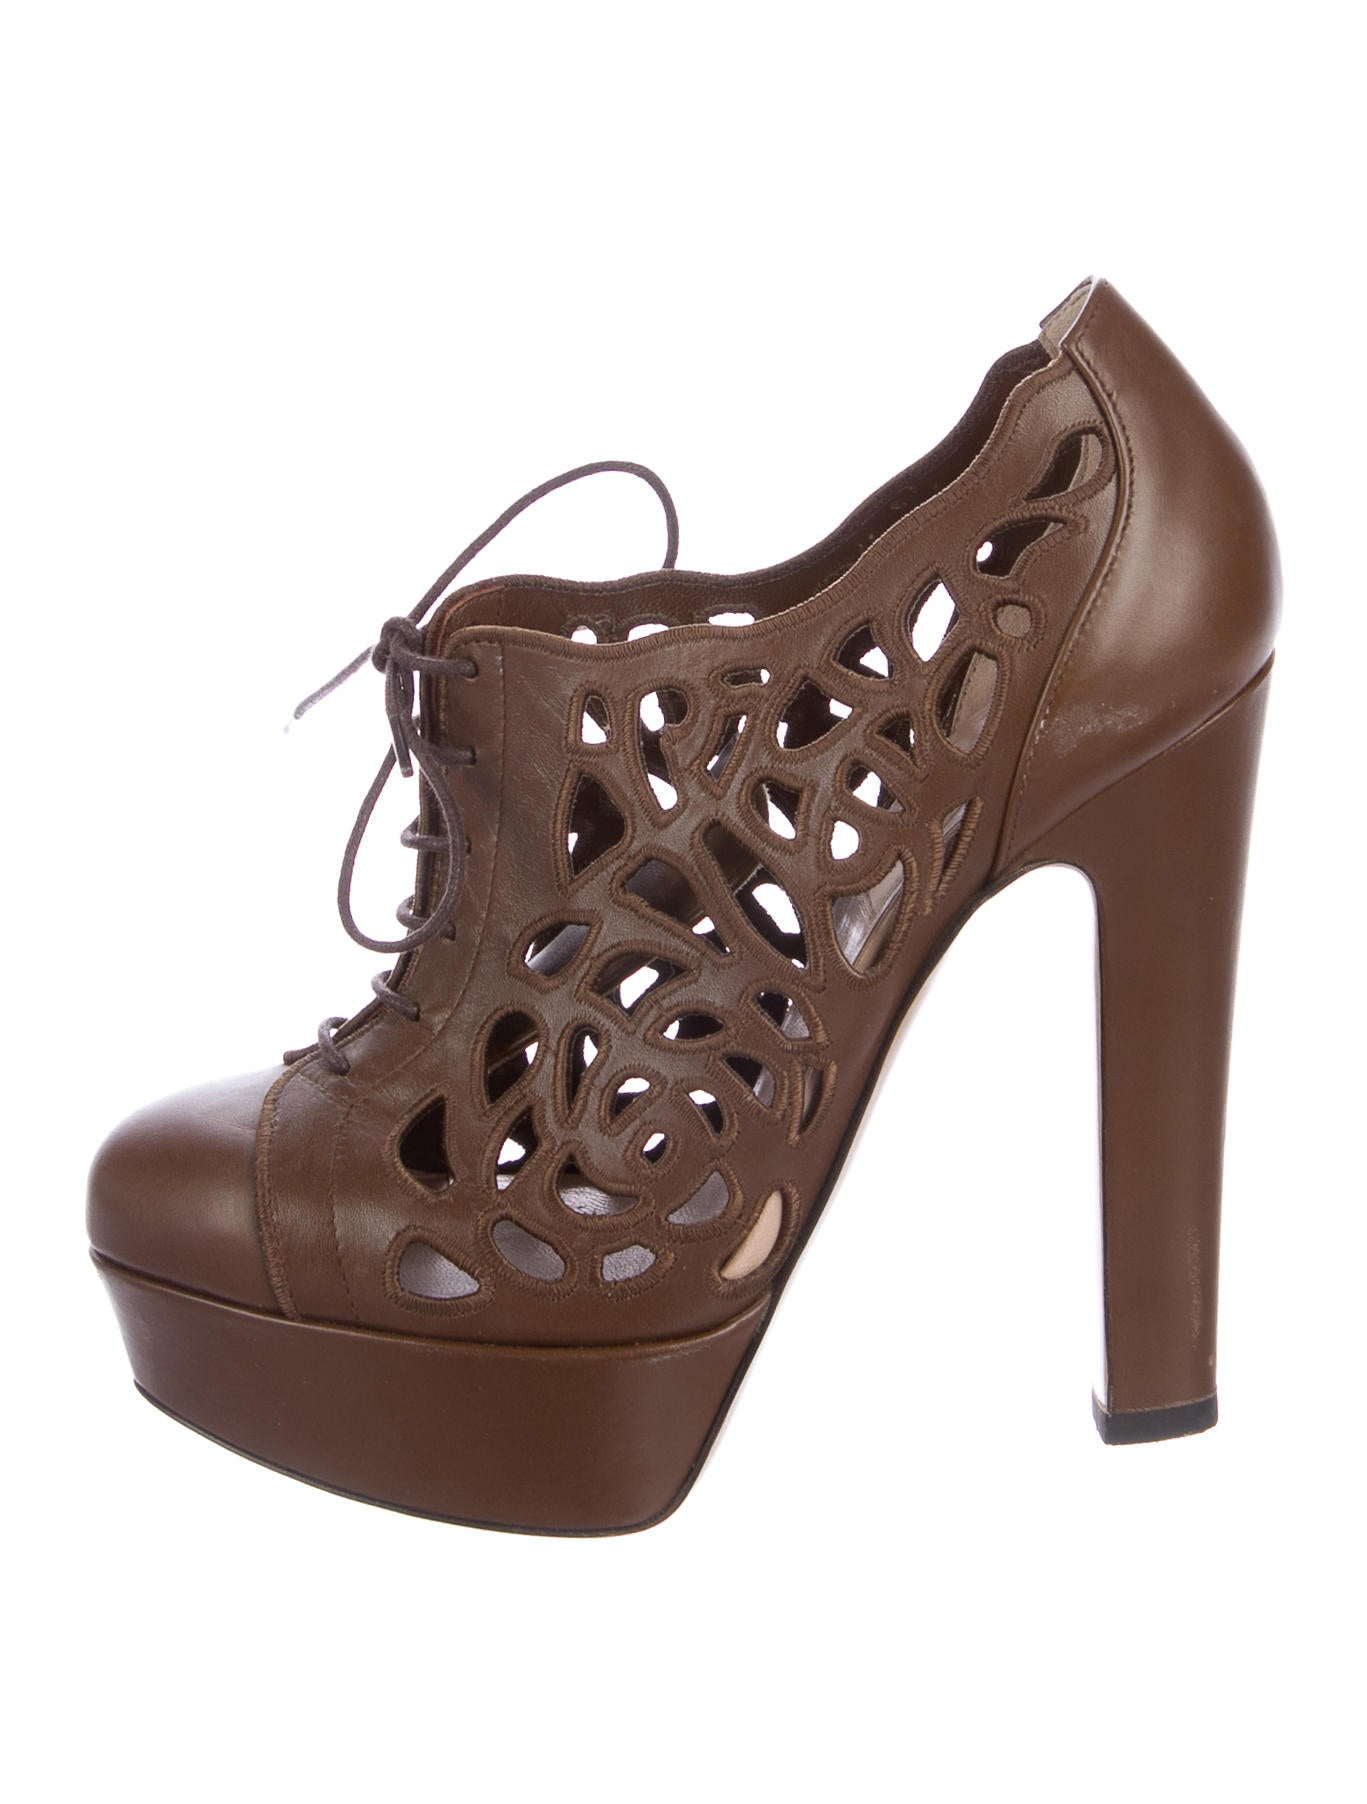 Valentino Leather Laser Cut Platform Booties amazing price cheap sale explore lVbgrIY